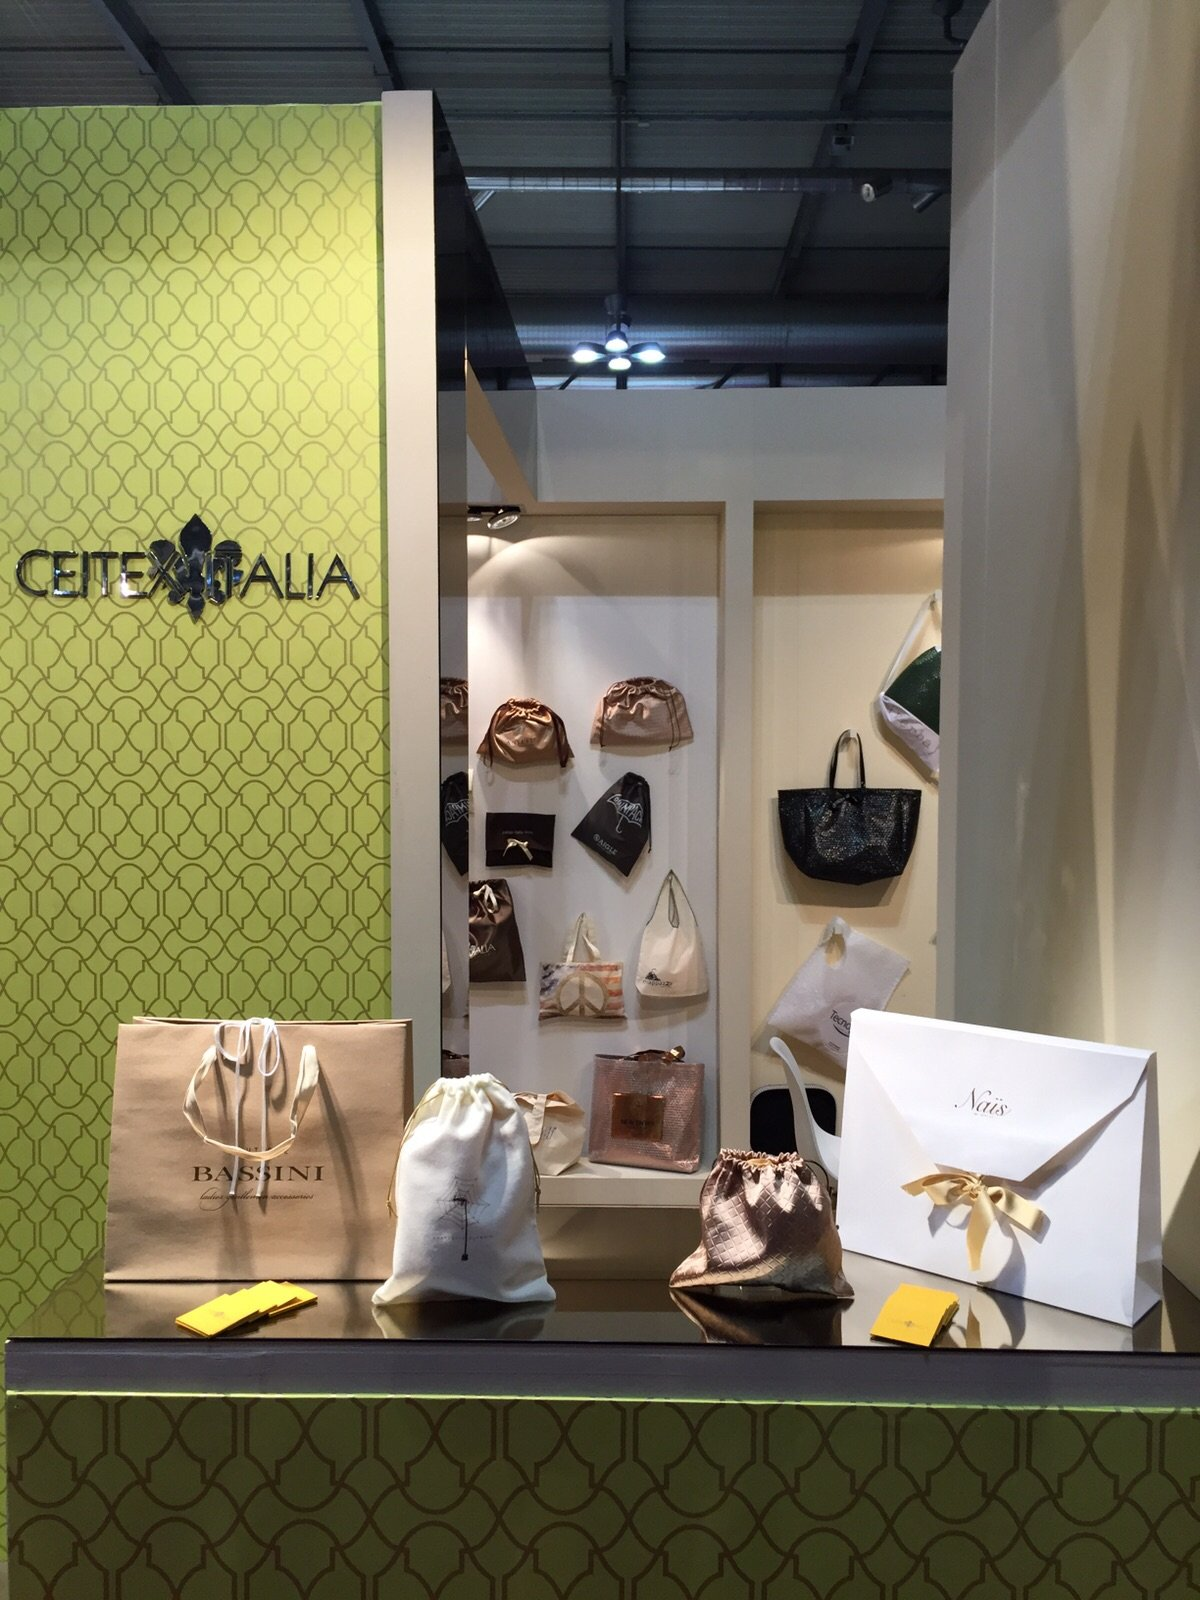 Ceitex Italia Stand at LineaPelle